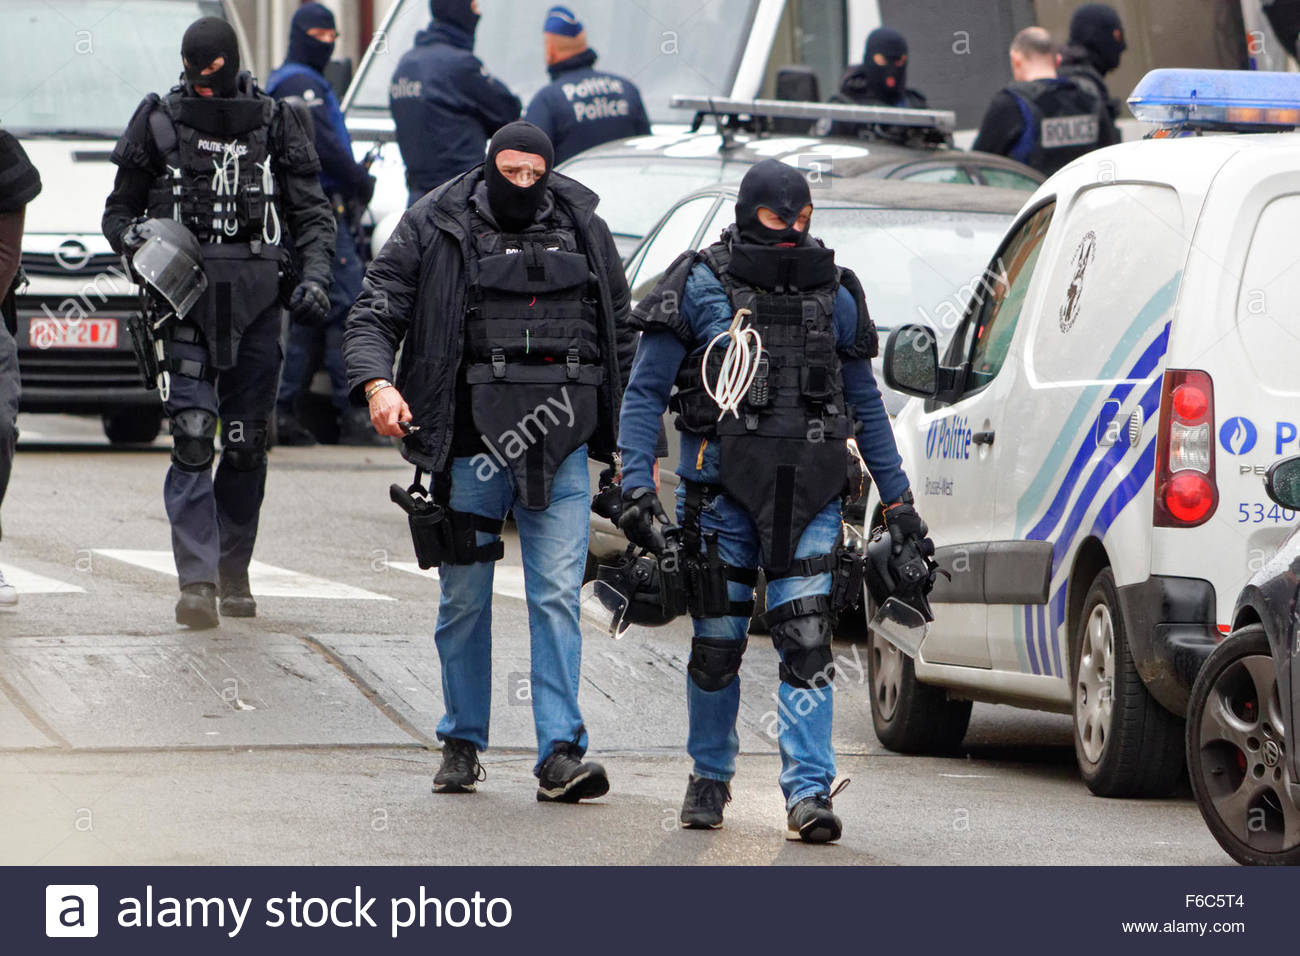 Bekkevoort belgium november 16th 2015 anti terrorist for 66 st georges terrace post office